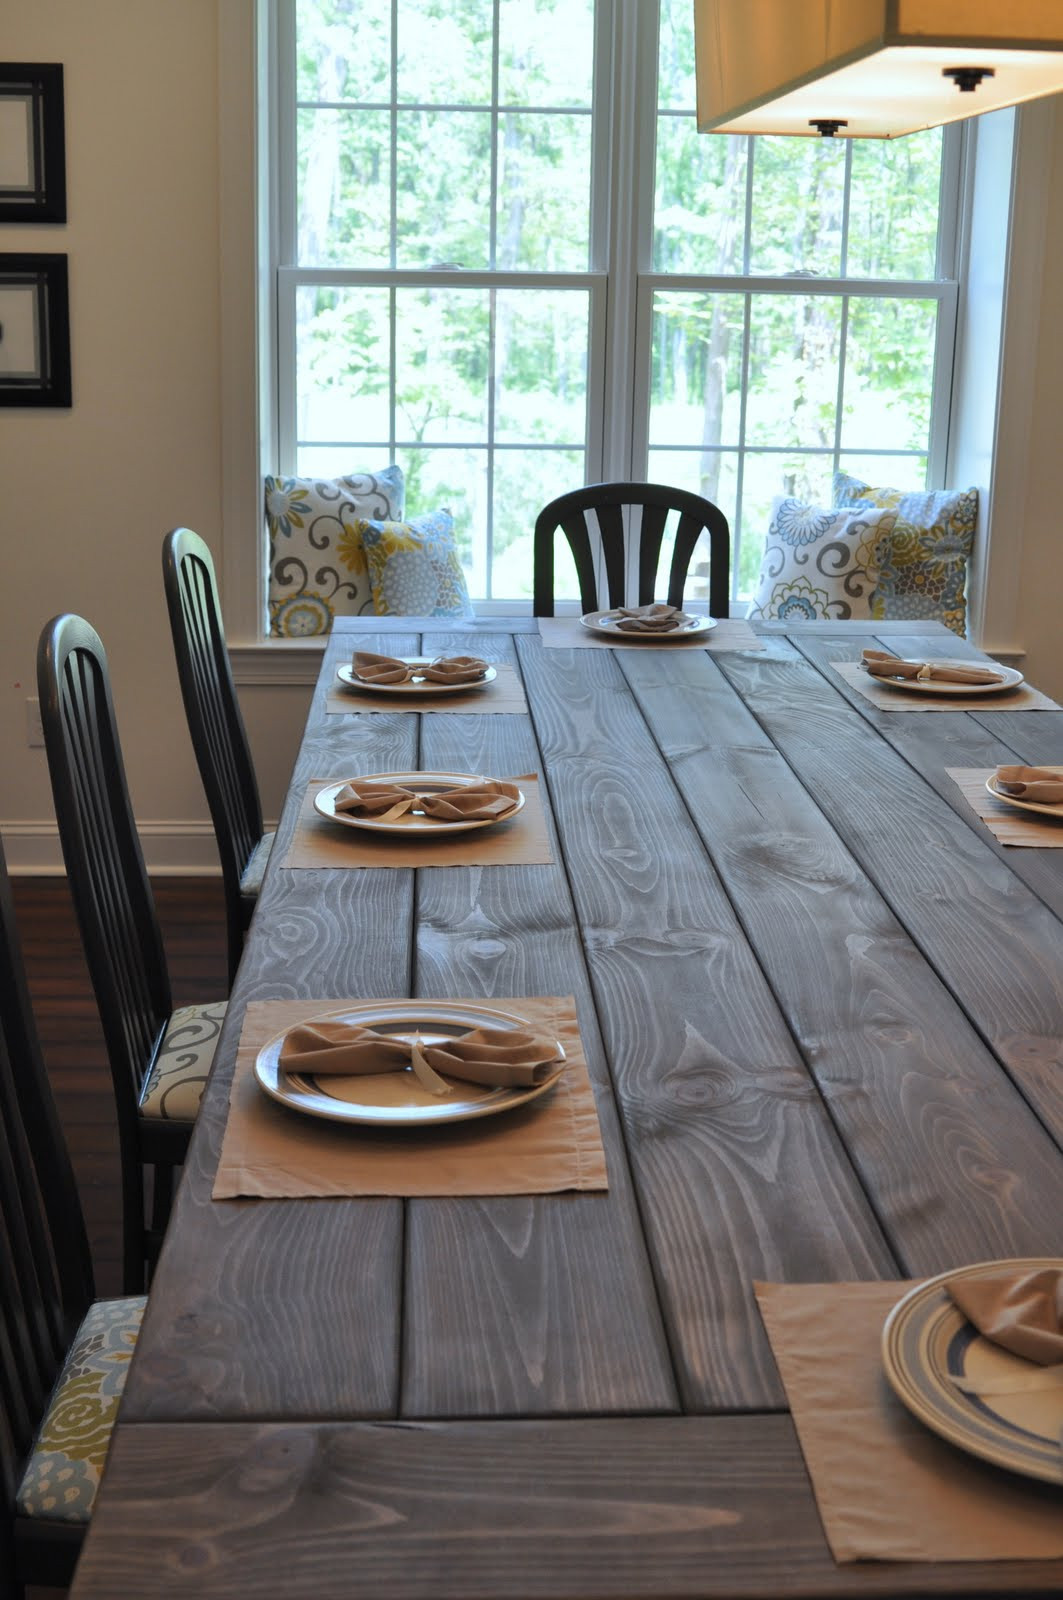 Best ideas about DIY Farmhouse Kitchen Table . Save or Pin Farmhouse Table Remix How to Build a Farmhouse Table Now.